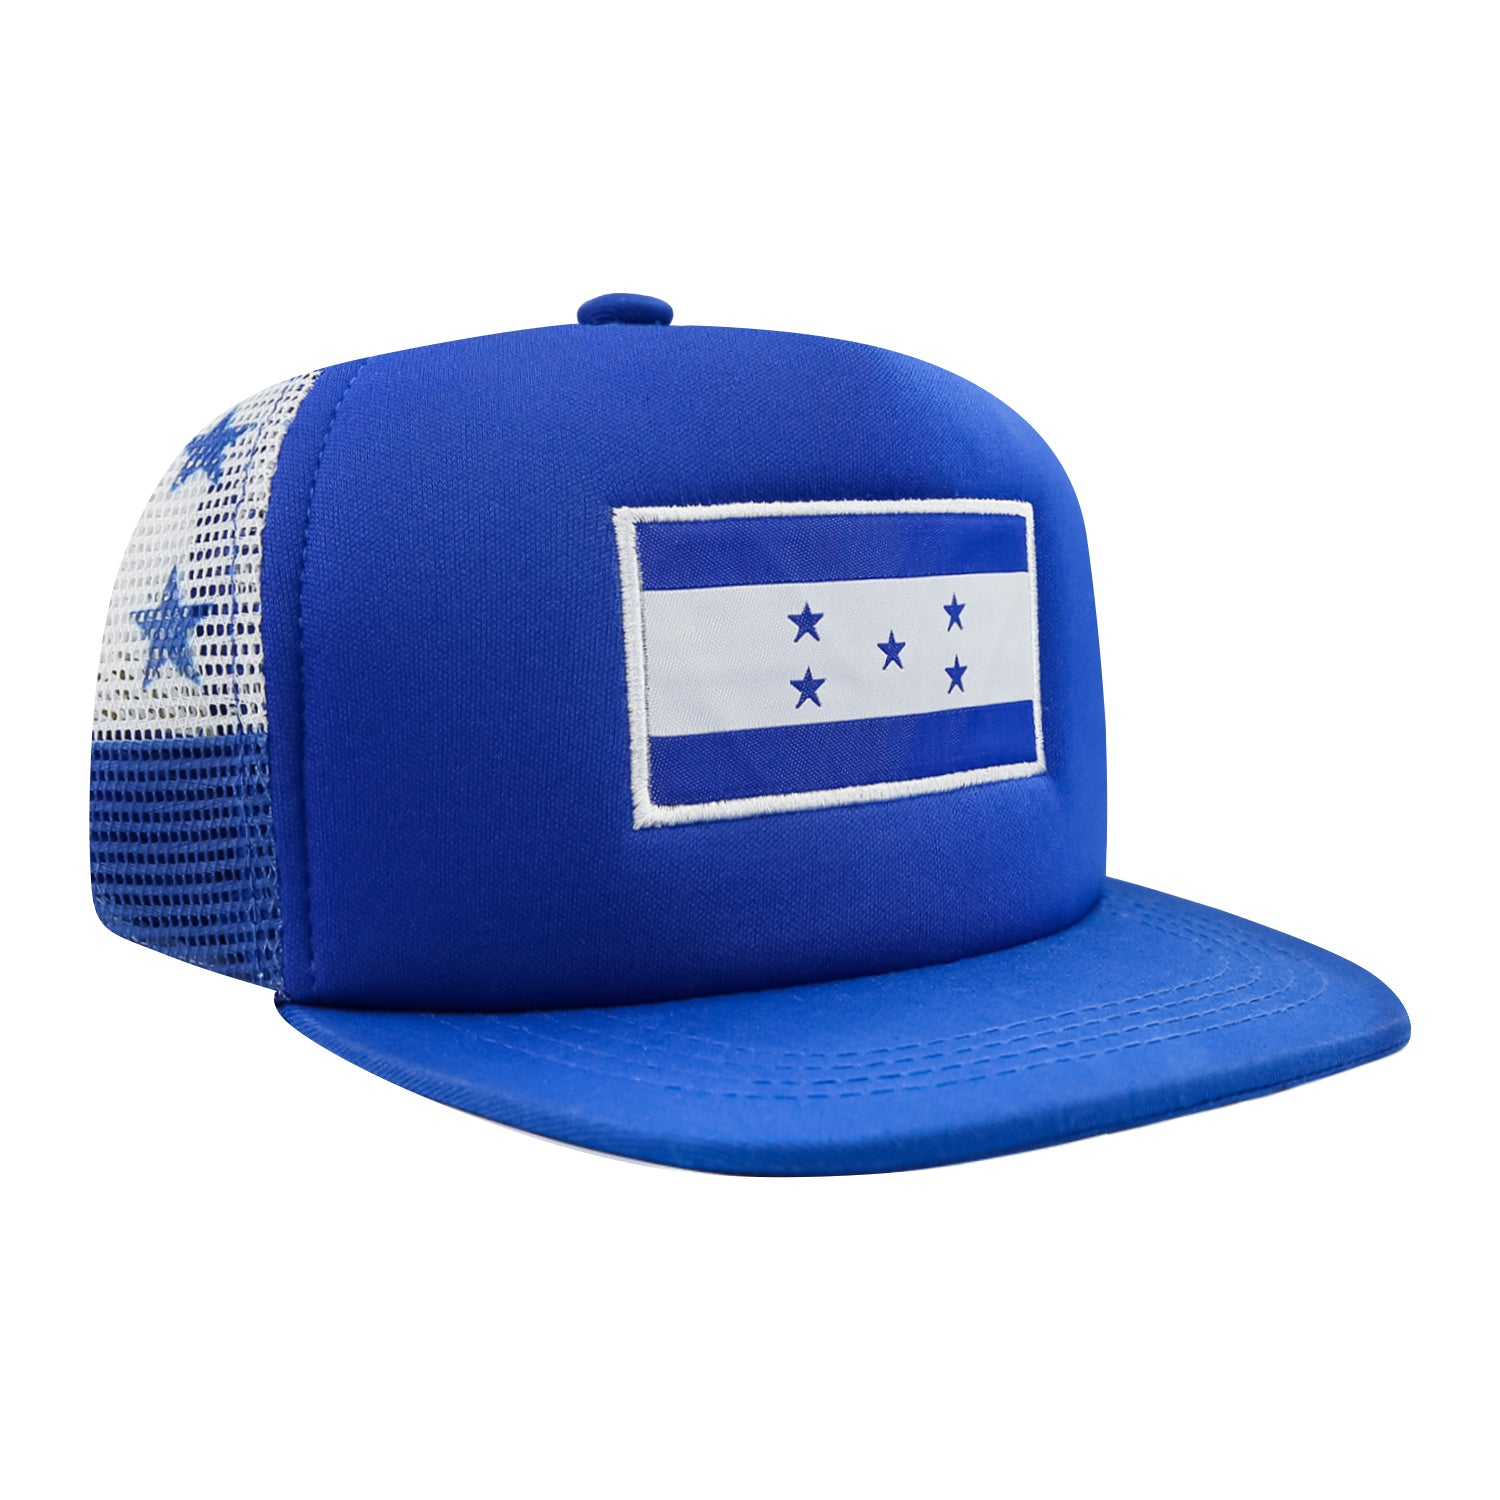 Honduras Country Flag Trucker Hat by Icon Sports